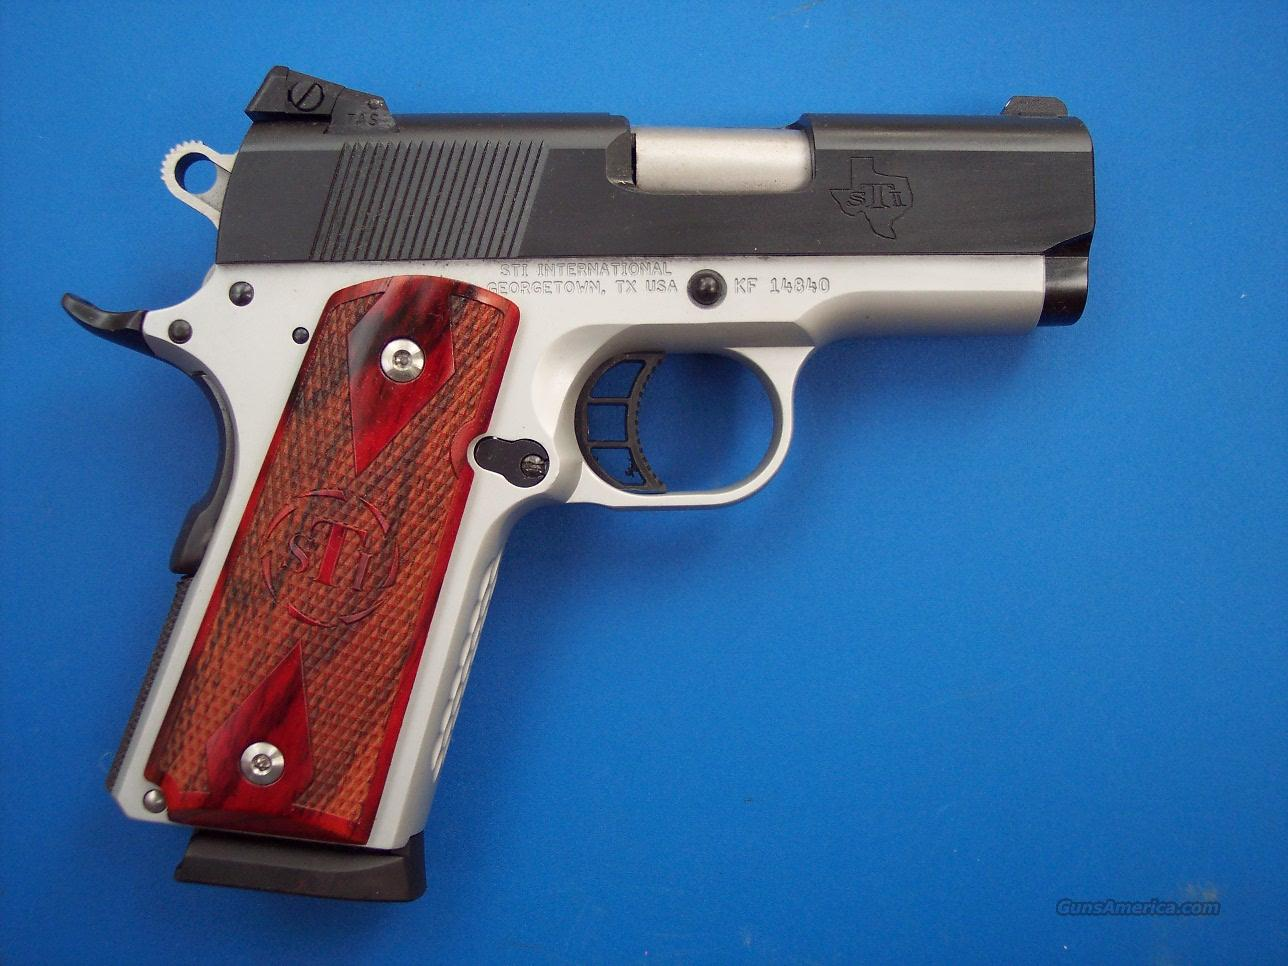 STI Escort 9mm Officer Custom 1911 *NEW* FREE Shipping  Guns > Pistols > STI Pistols